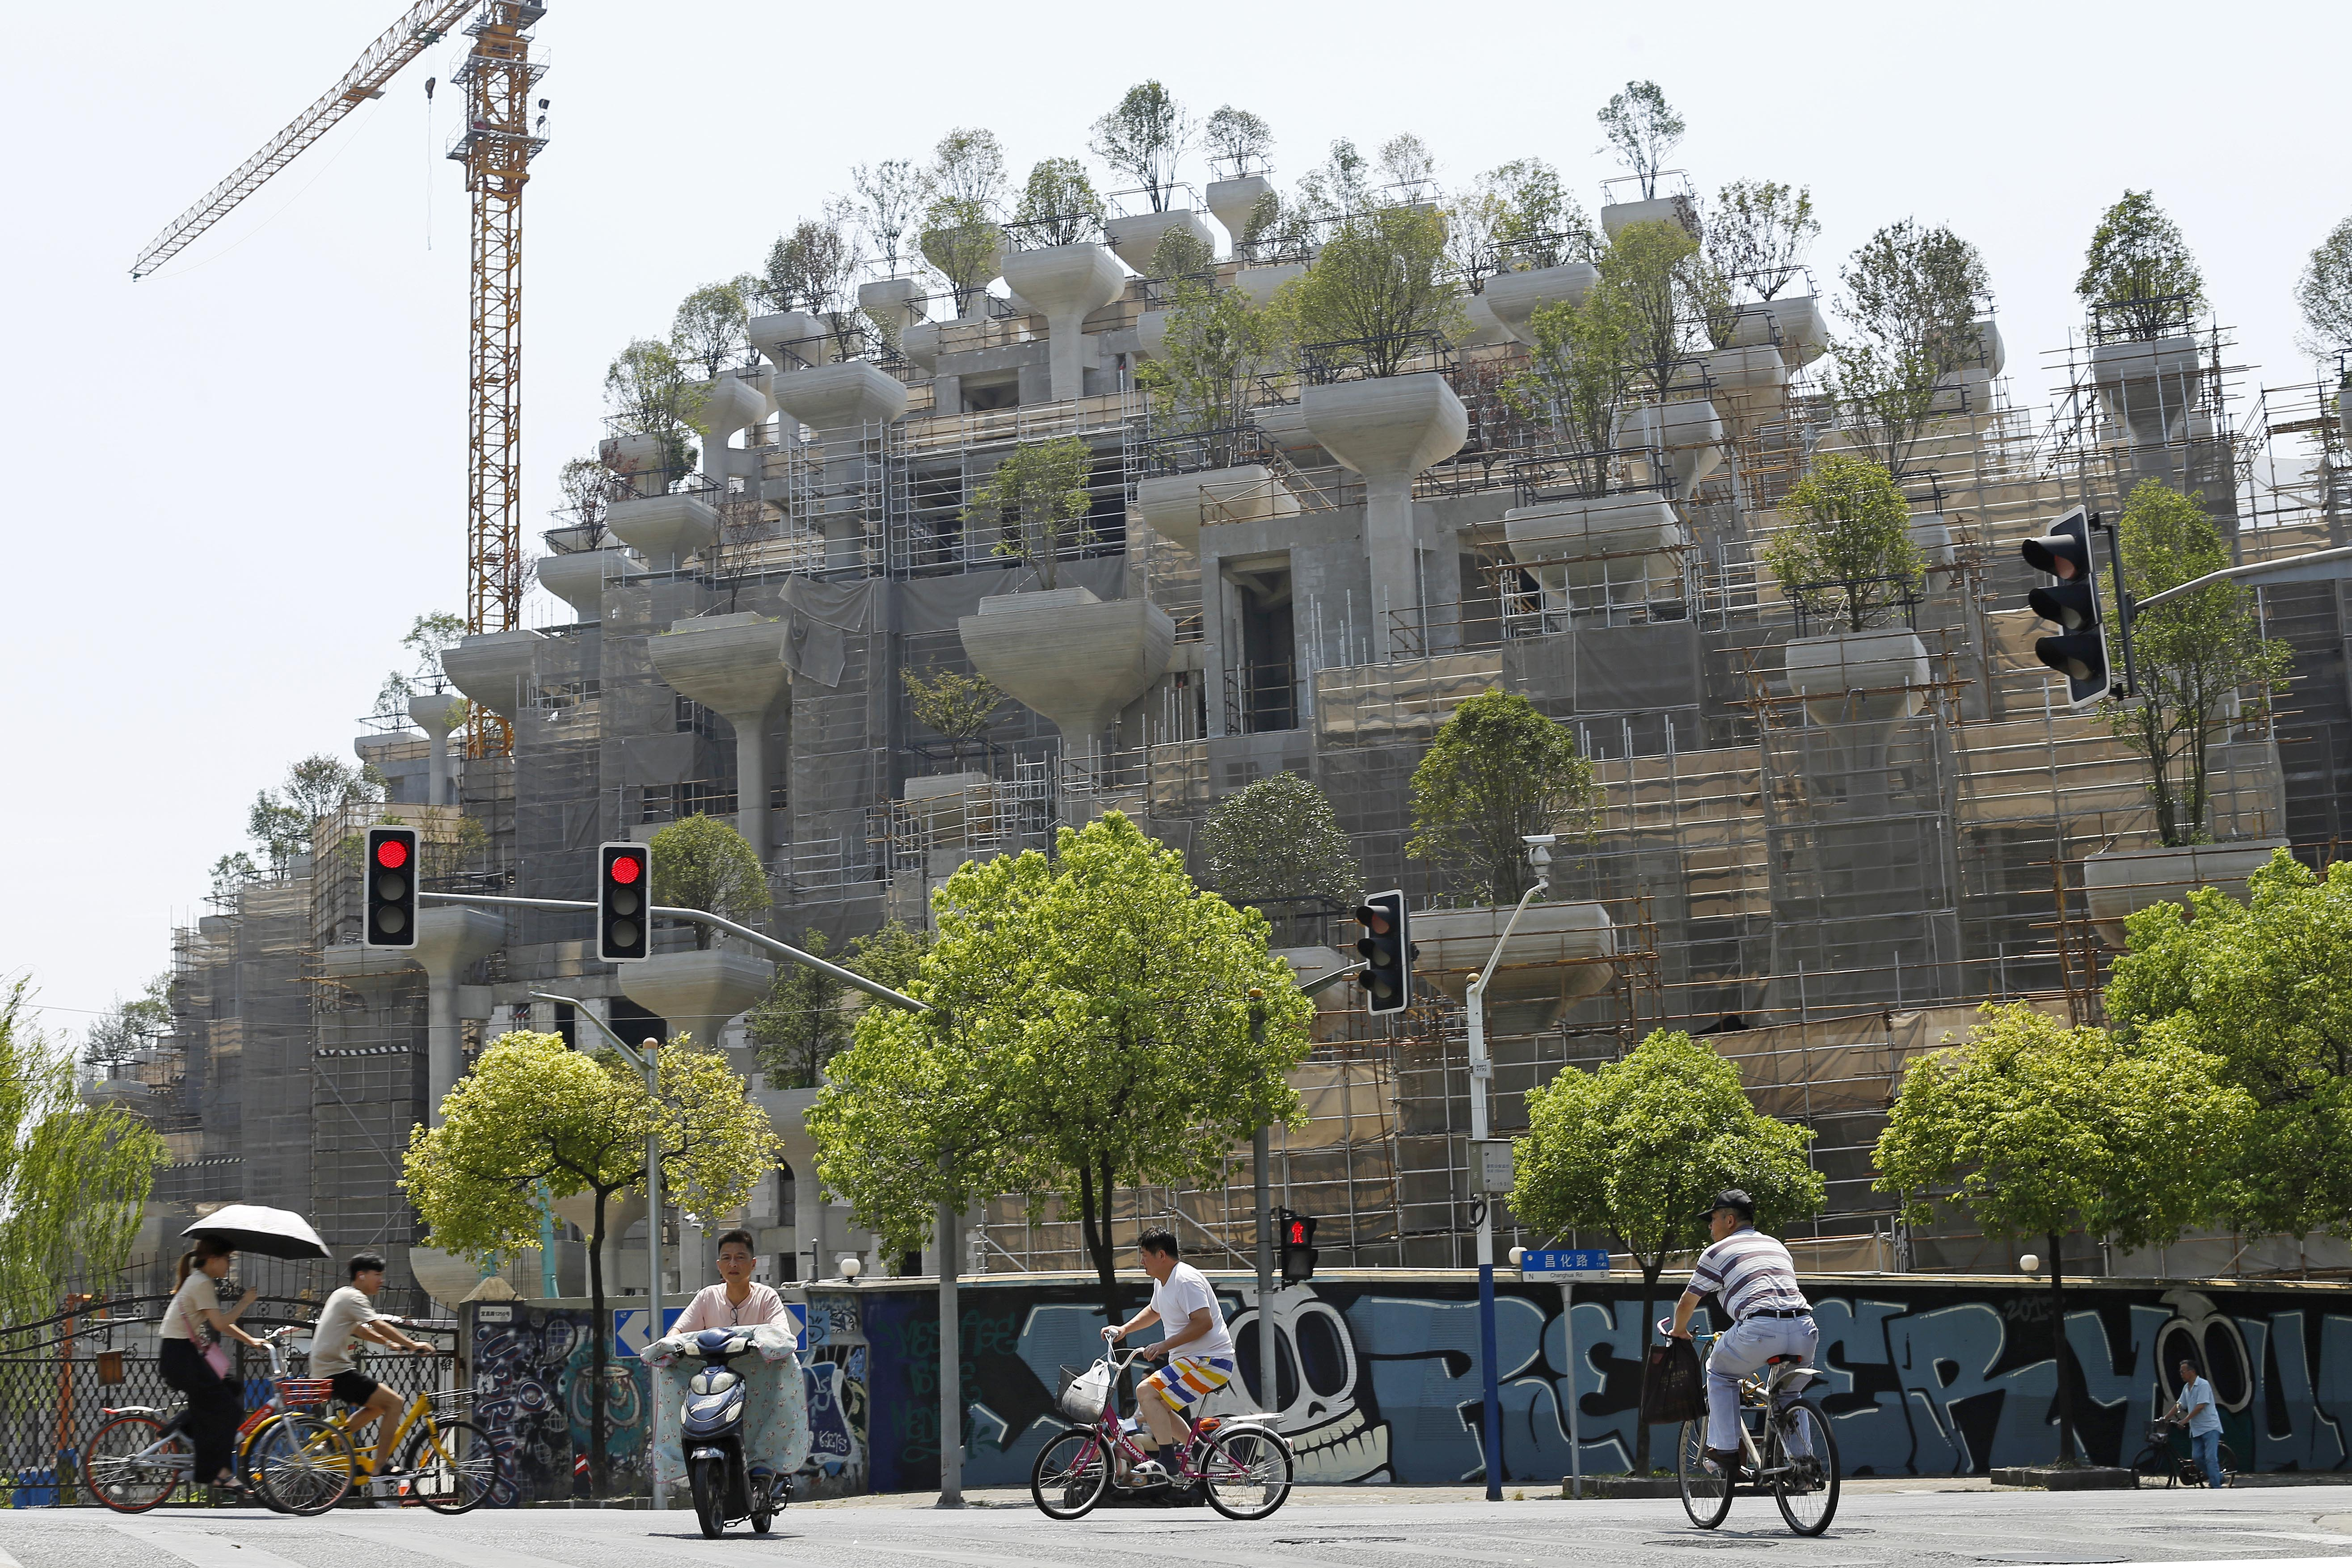 The '1000 Trees' project is being compared to the Hanging Gardens of Babylon